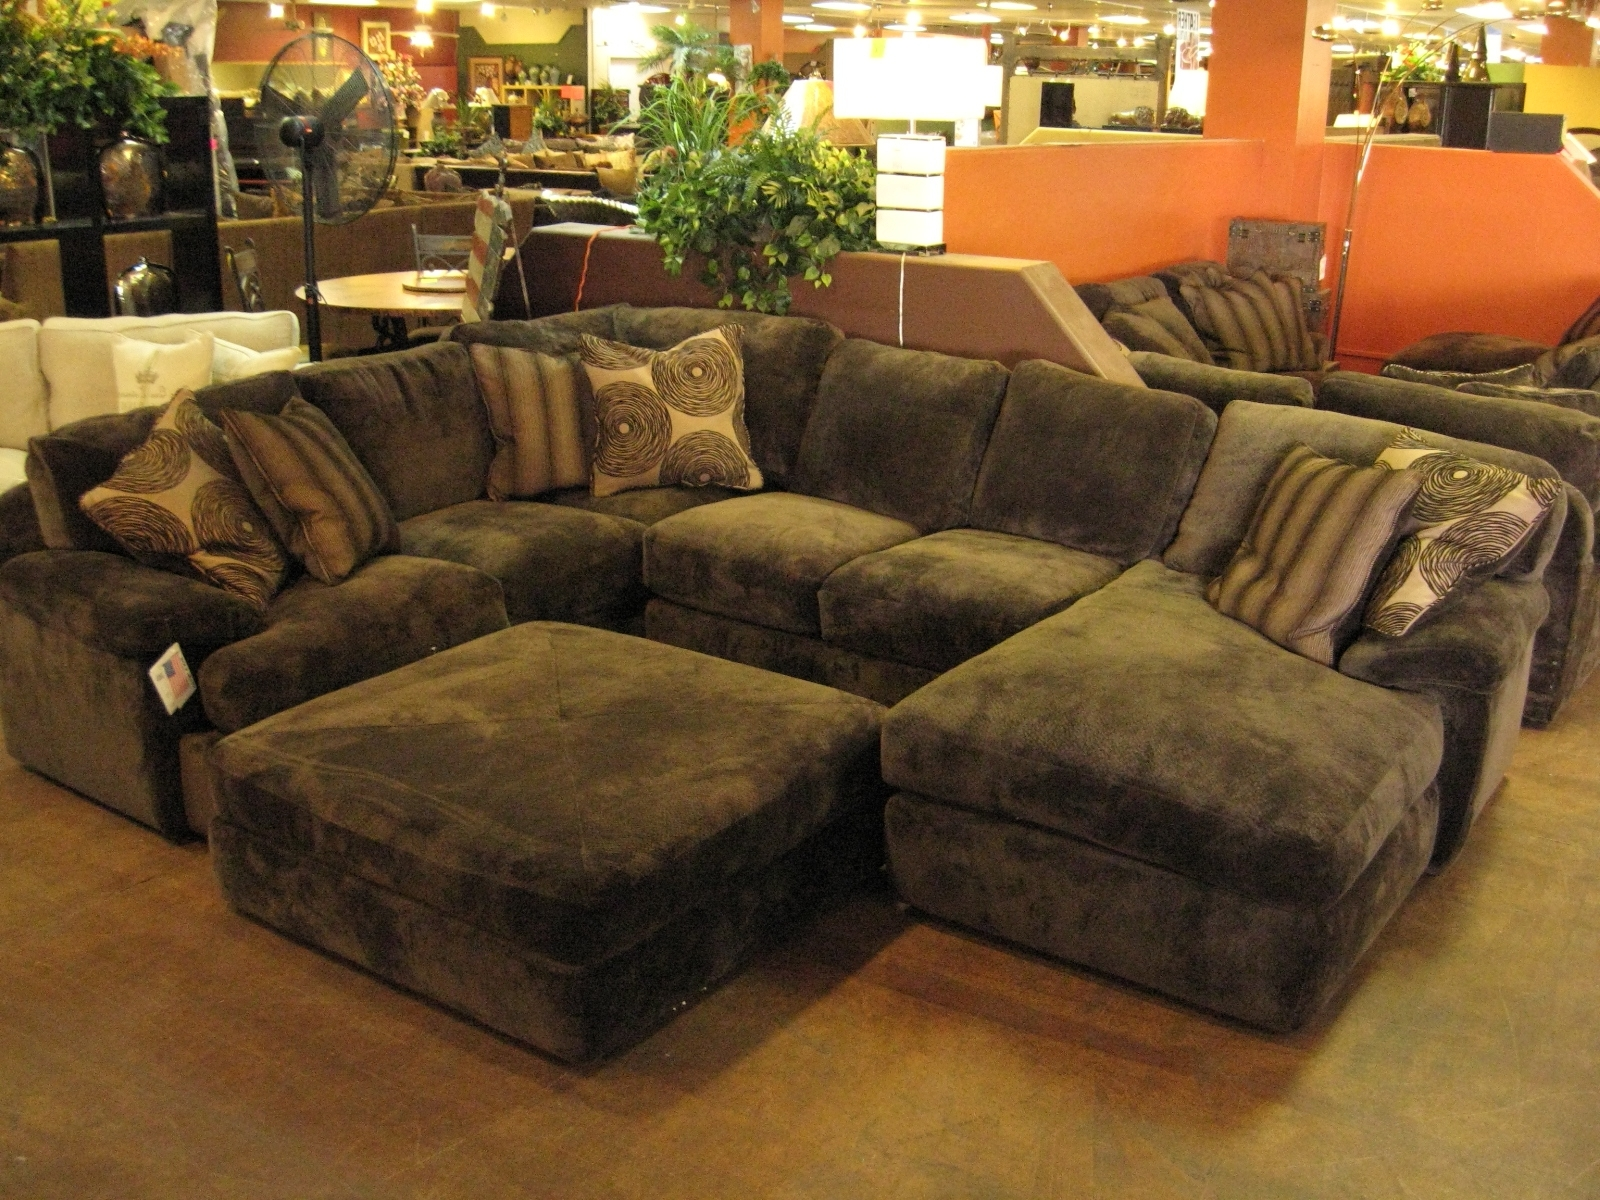 Sectional Sleeper Sofas With Ottoman Regarding Most Recently Released Black Velvet Fabric Sectional Sleeper Sofa With Chaise Lounge And (View 16 of 20)